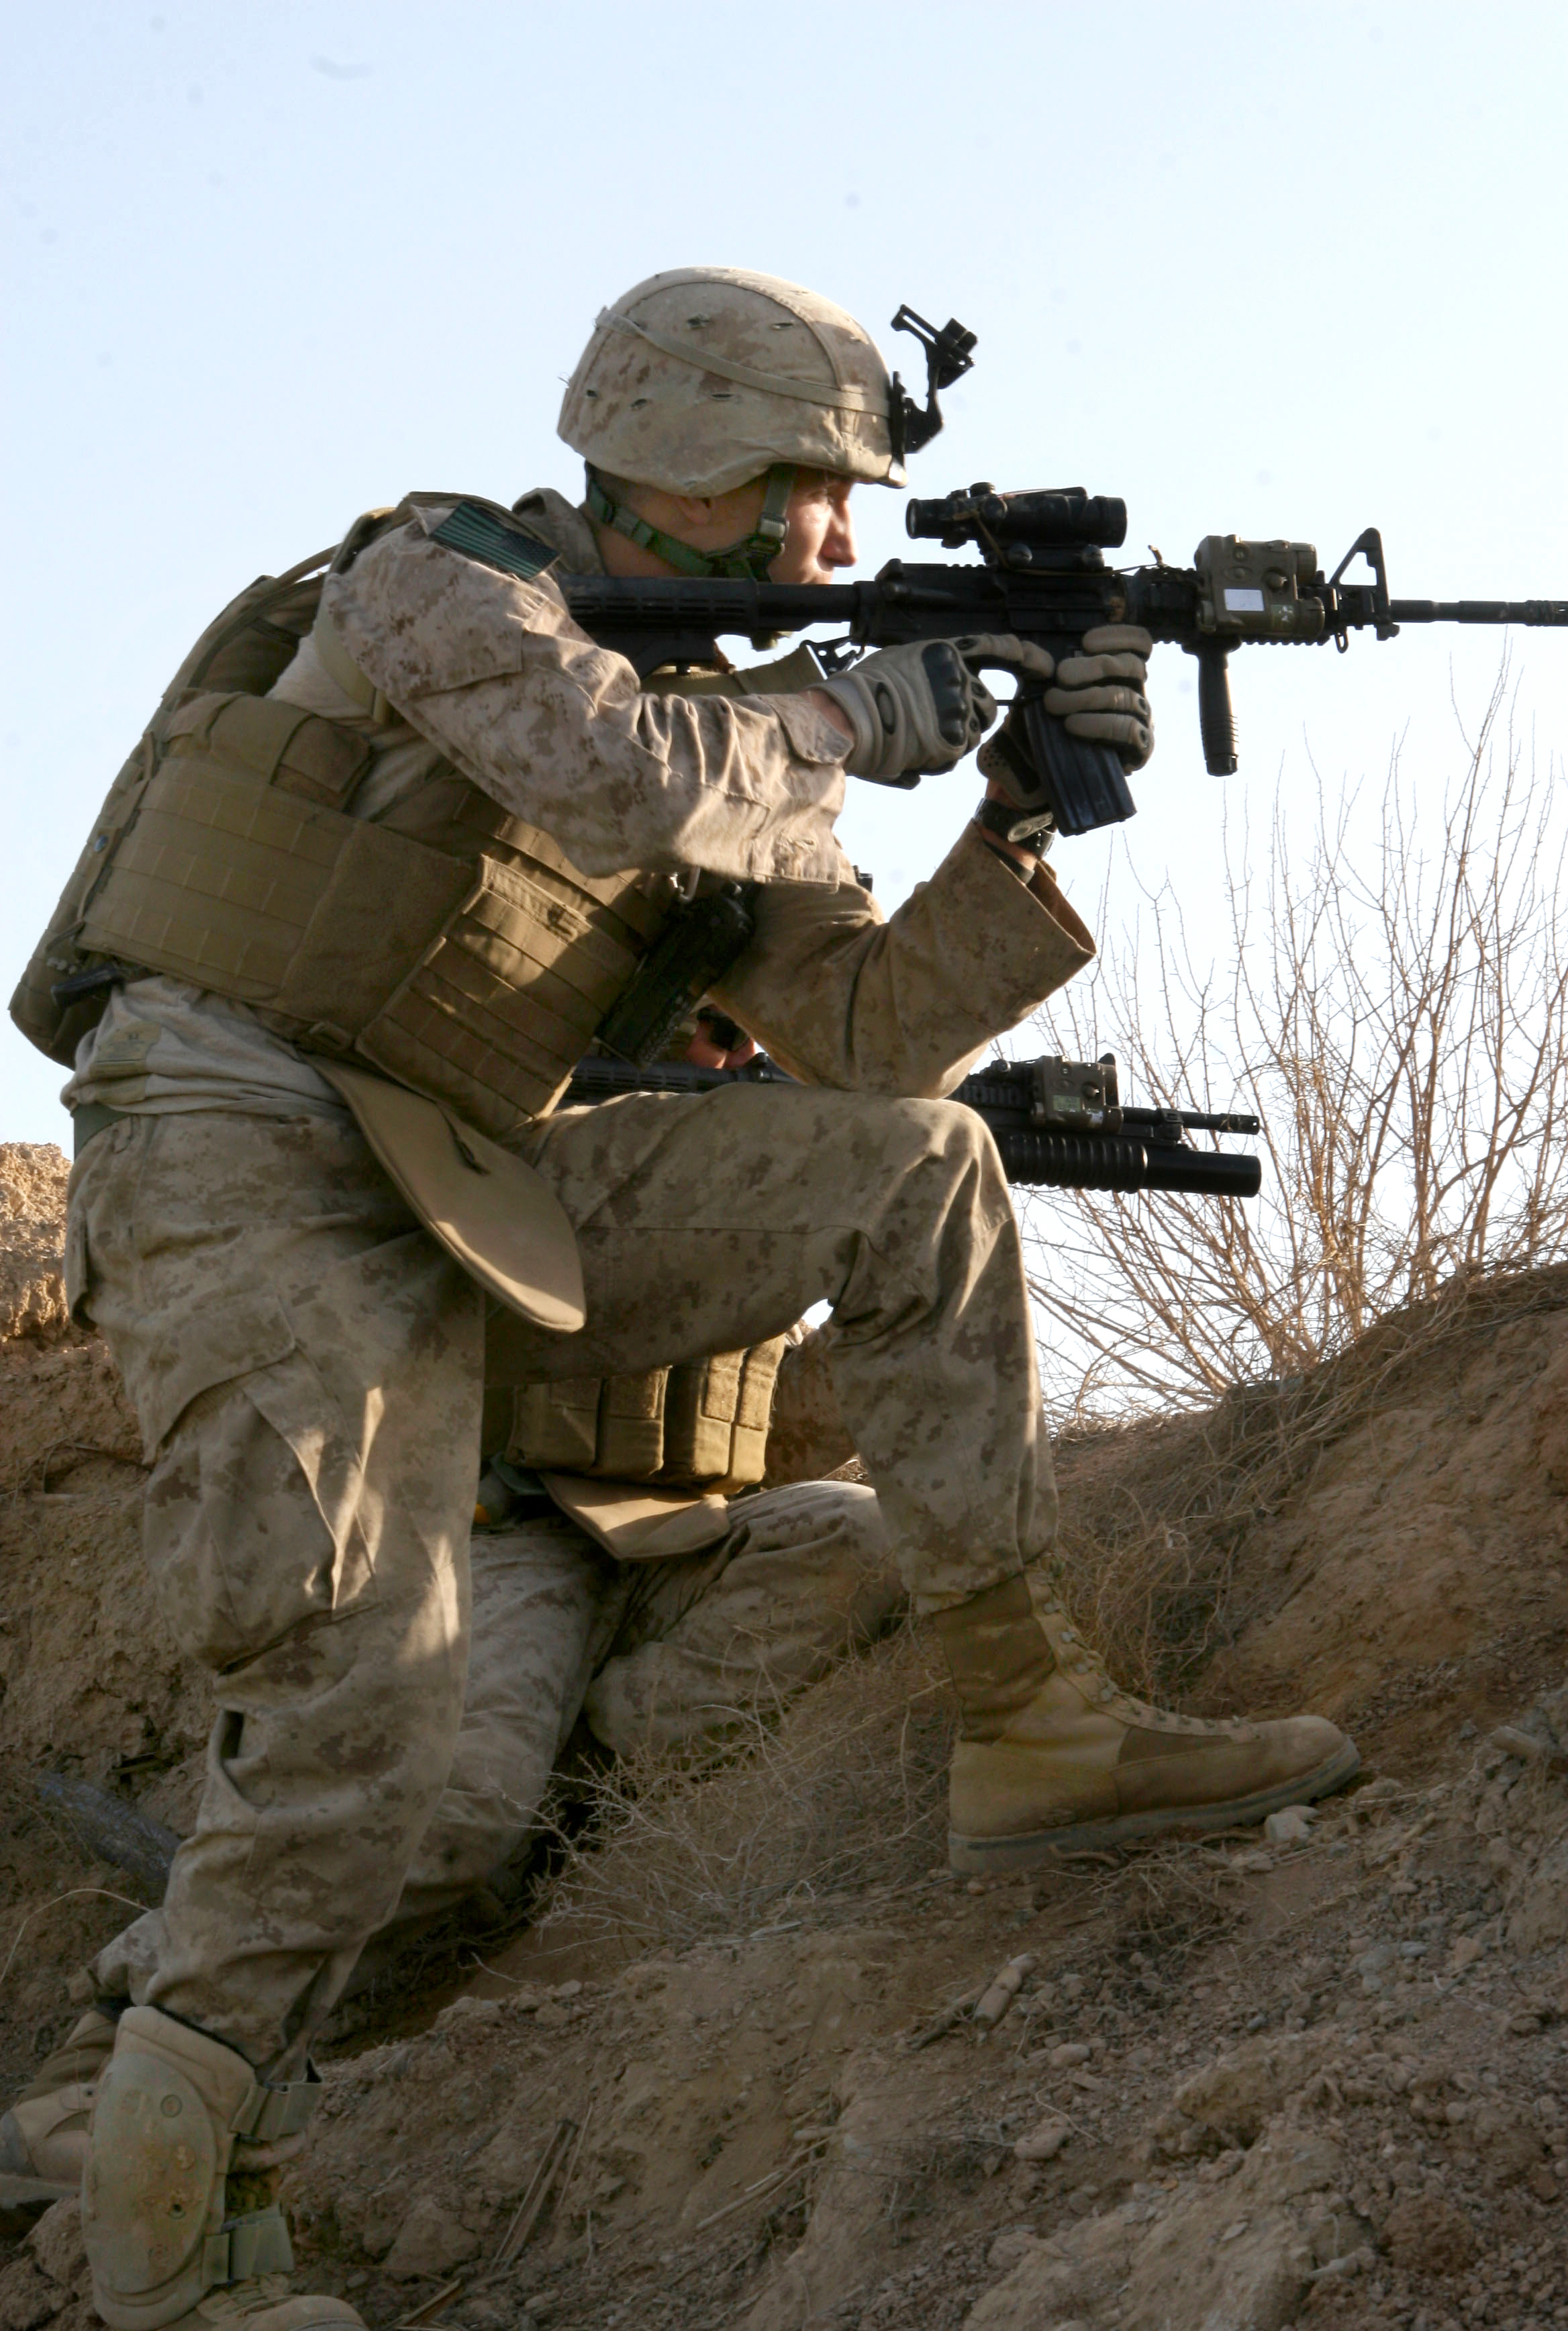 File:USMC in action in Marja 2010-02-13 4.jpg - Wikimedia ...